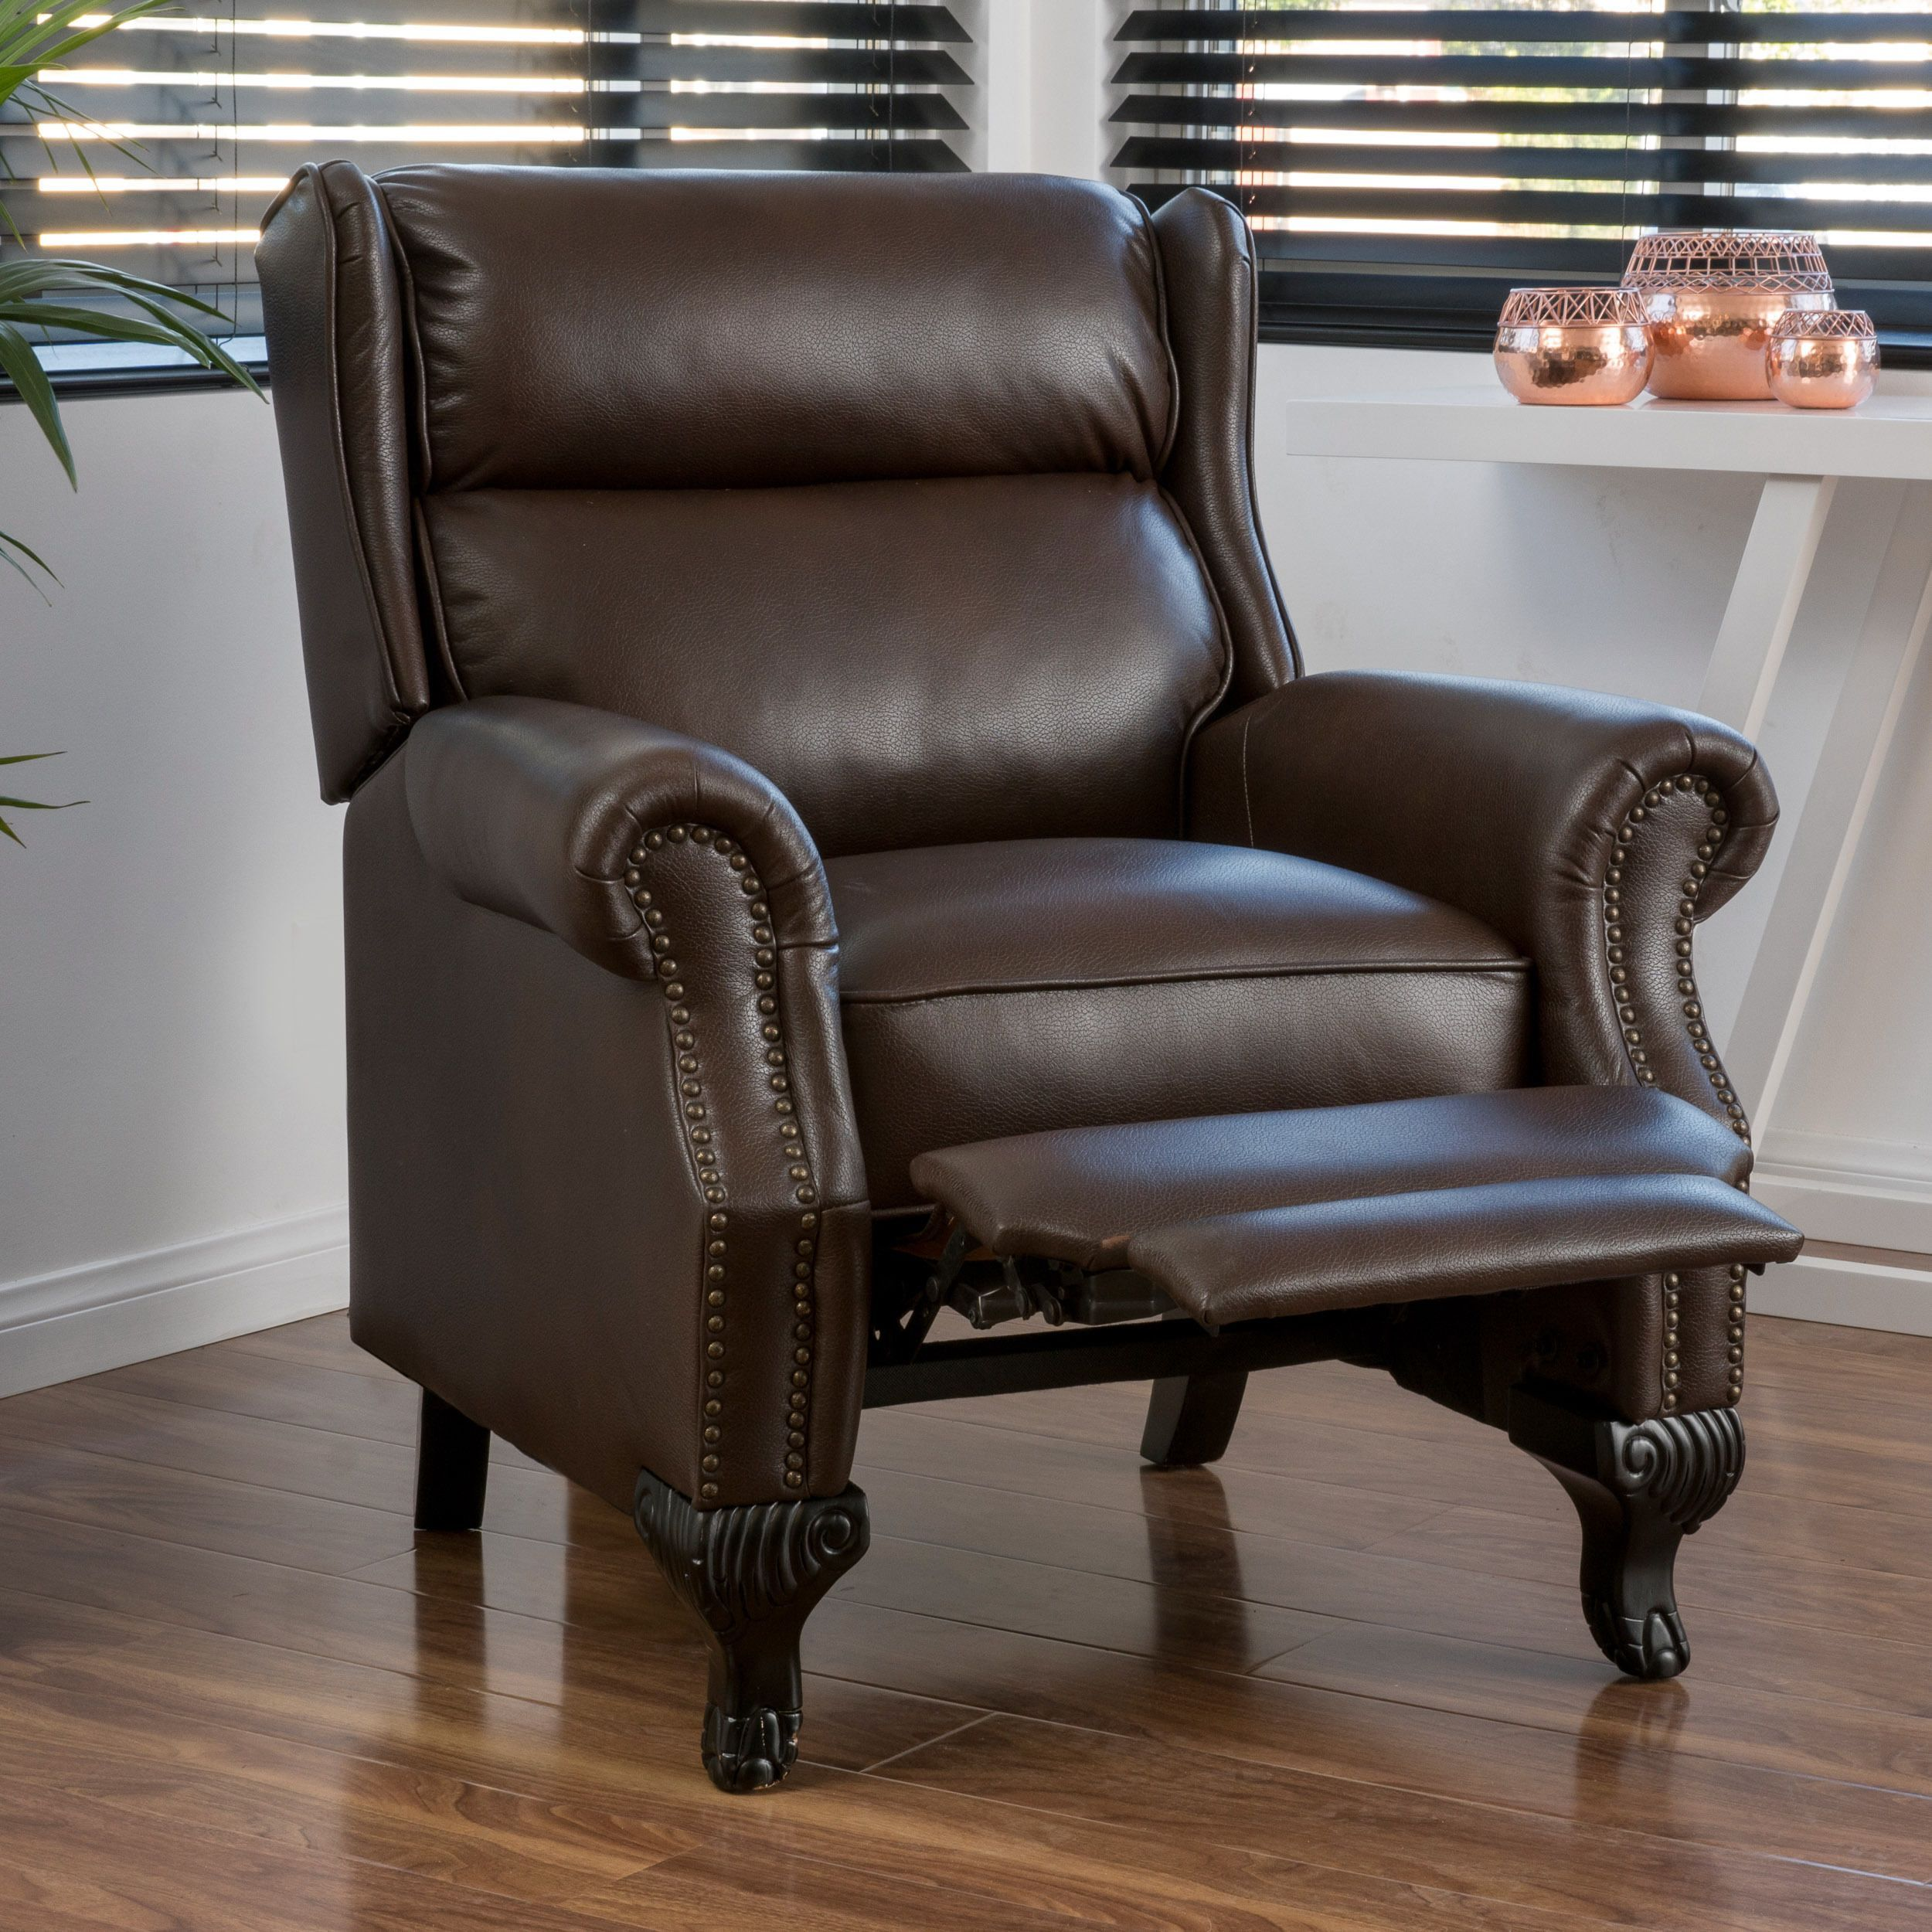 Tauris PU Leather Recliner Club Chair by Christopher Knight